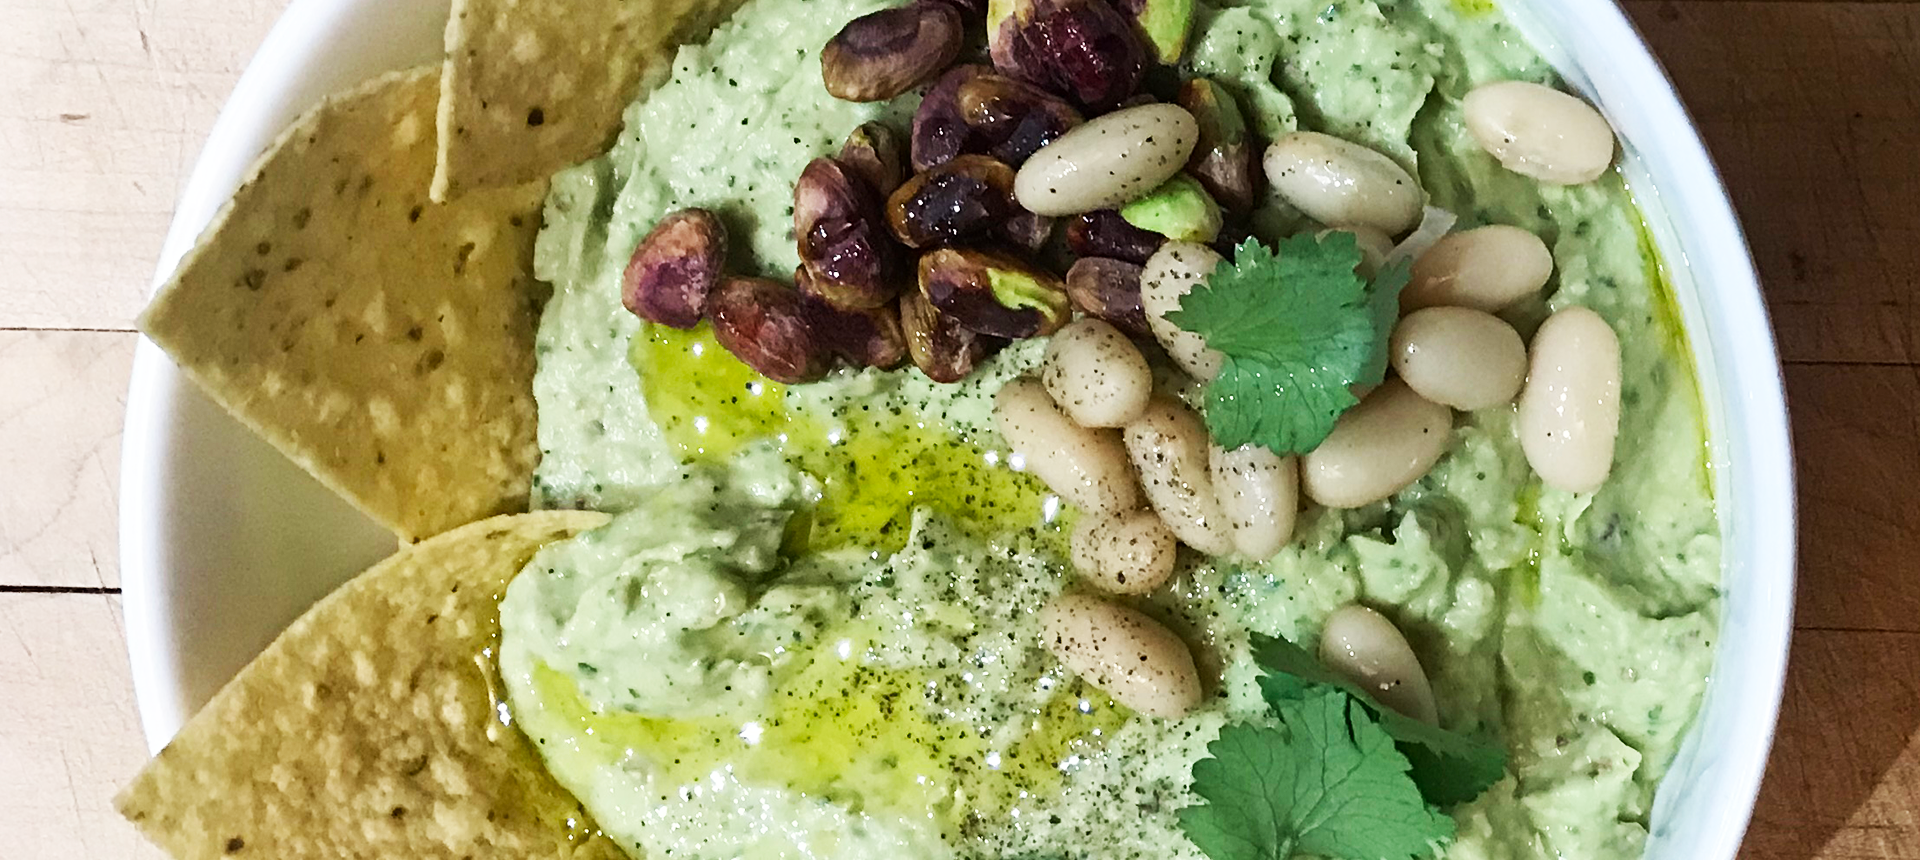 GUAC_FRONT